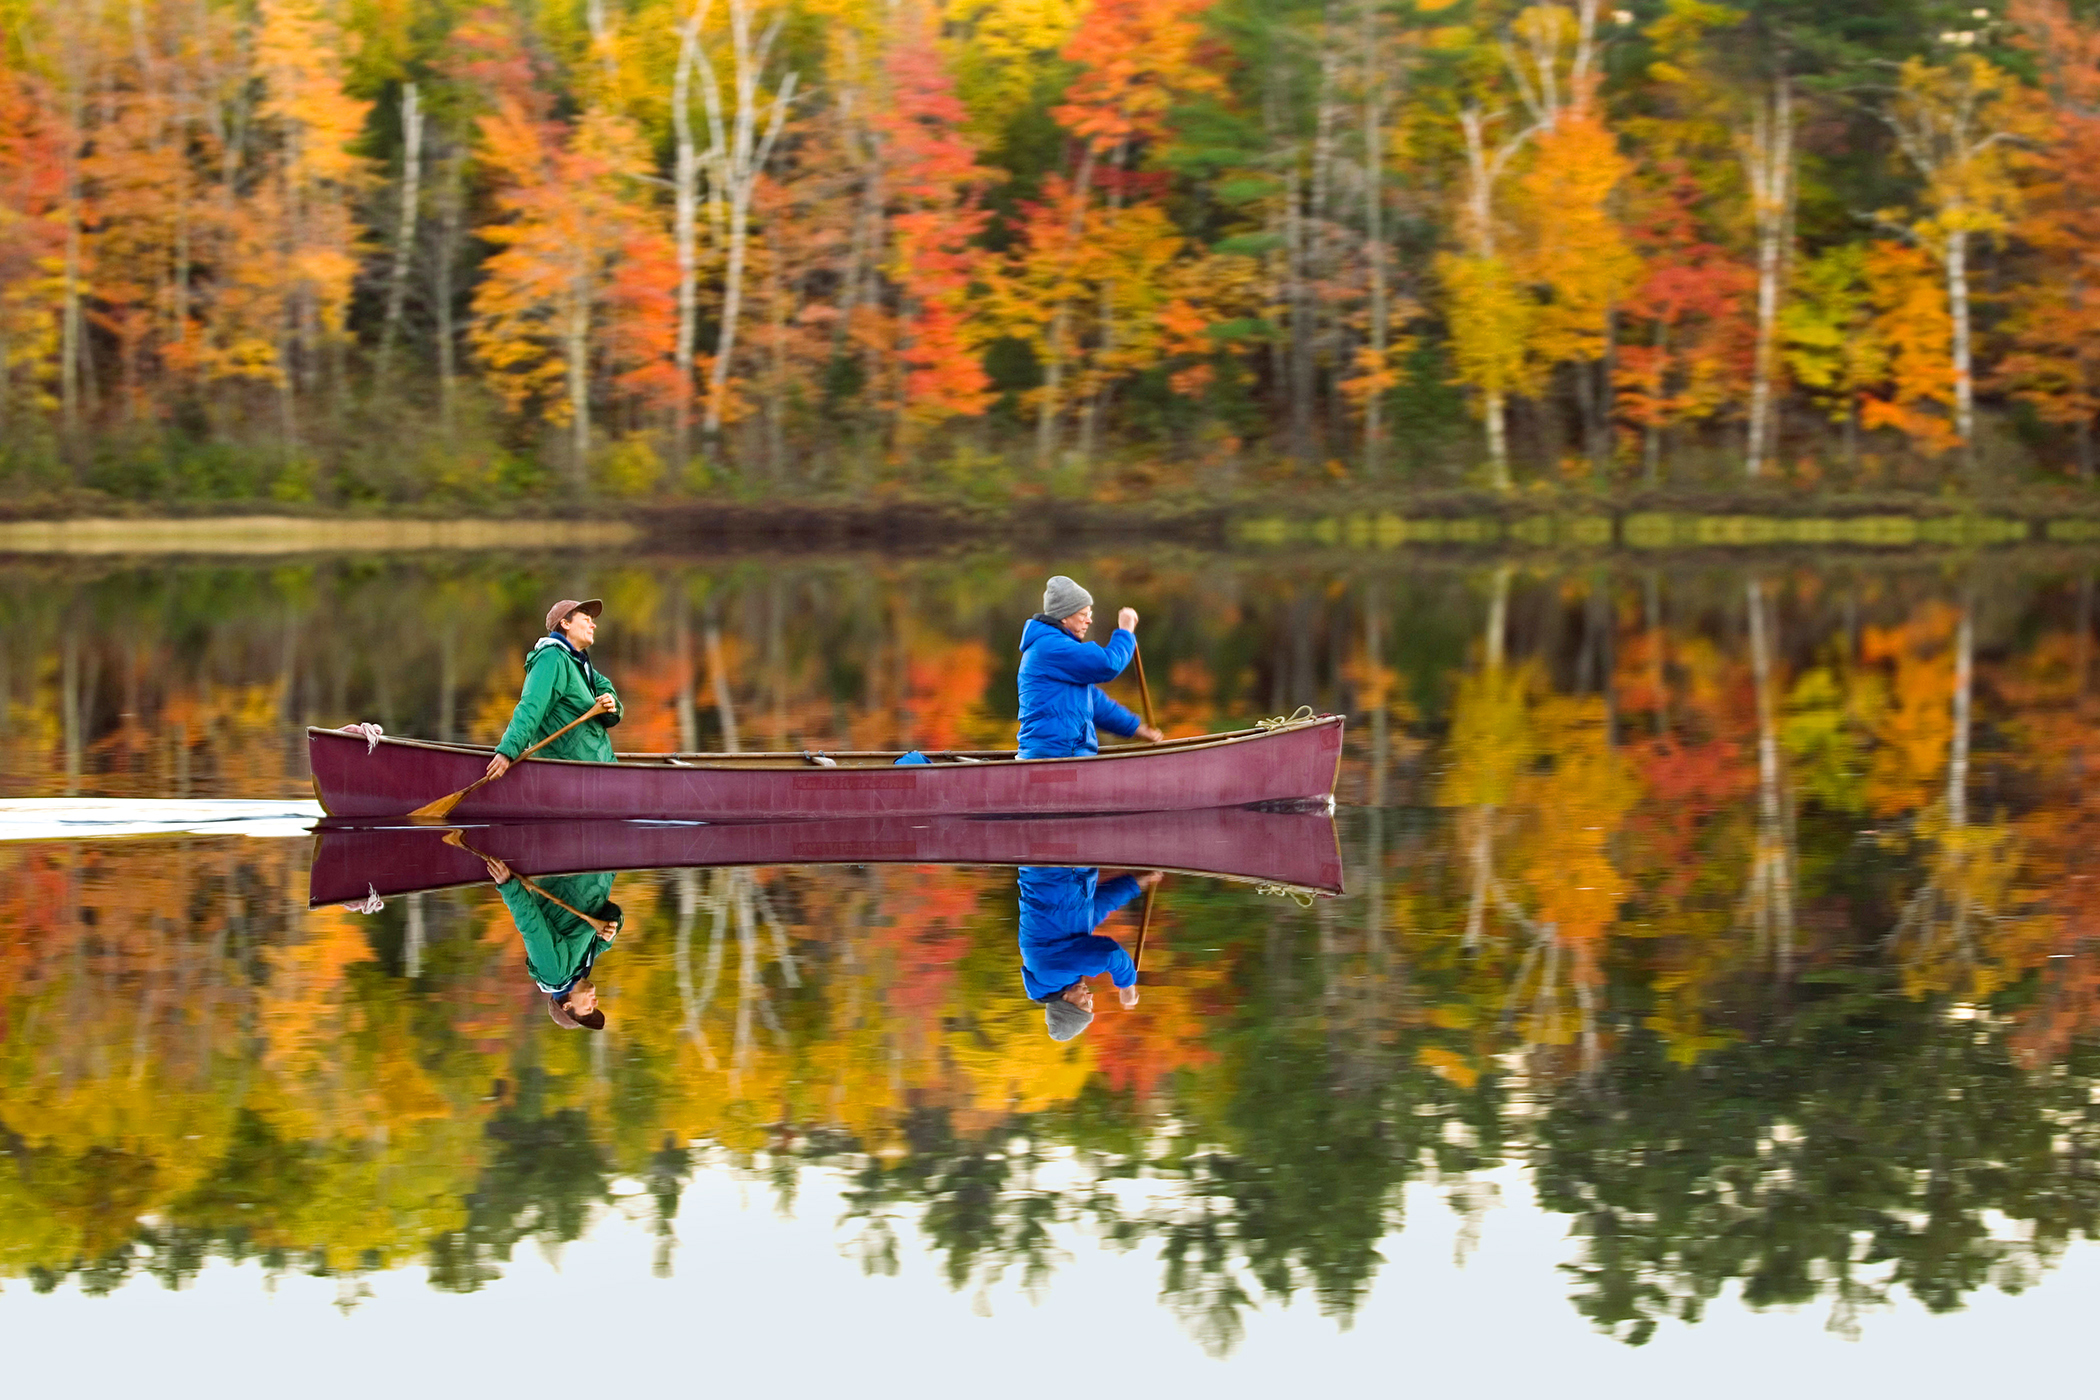 A pair of canoeists paddle